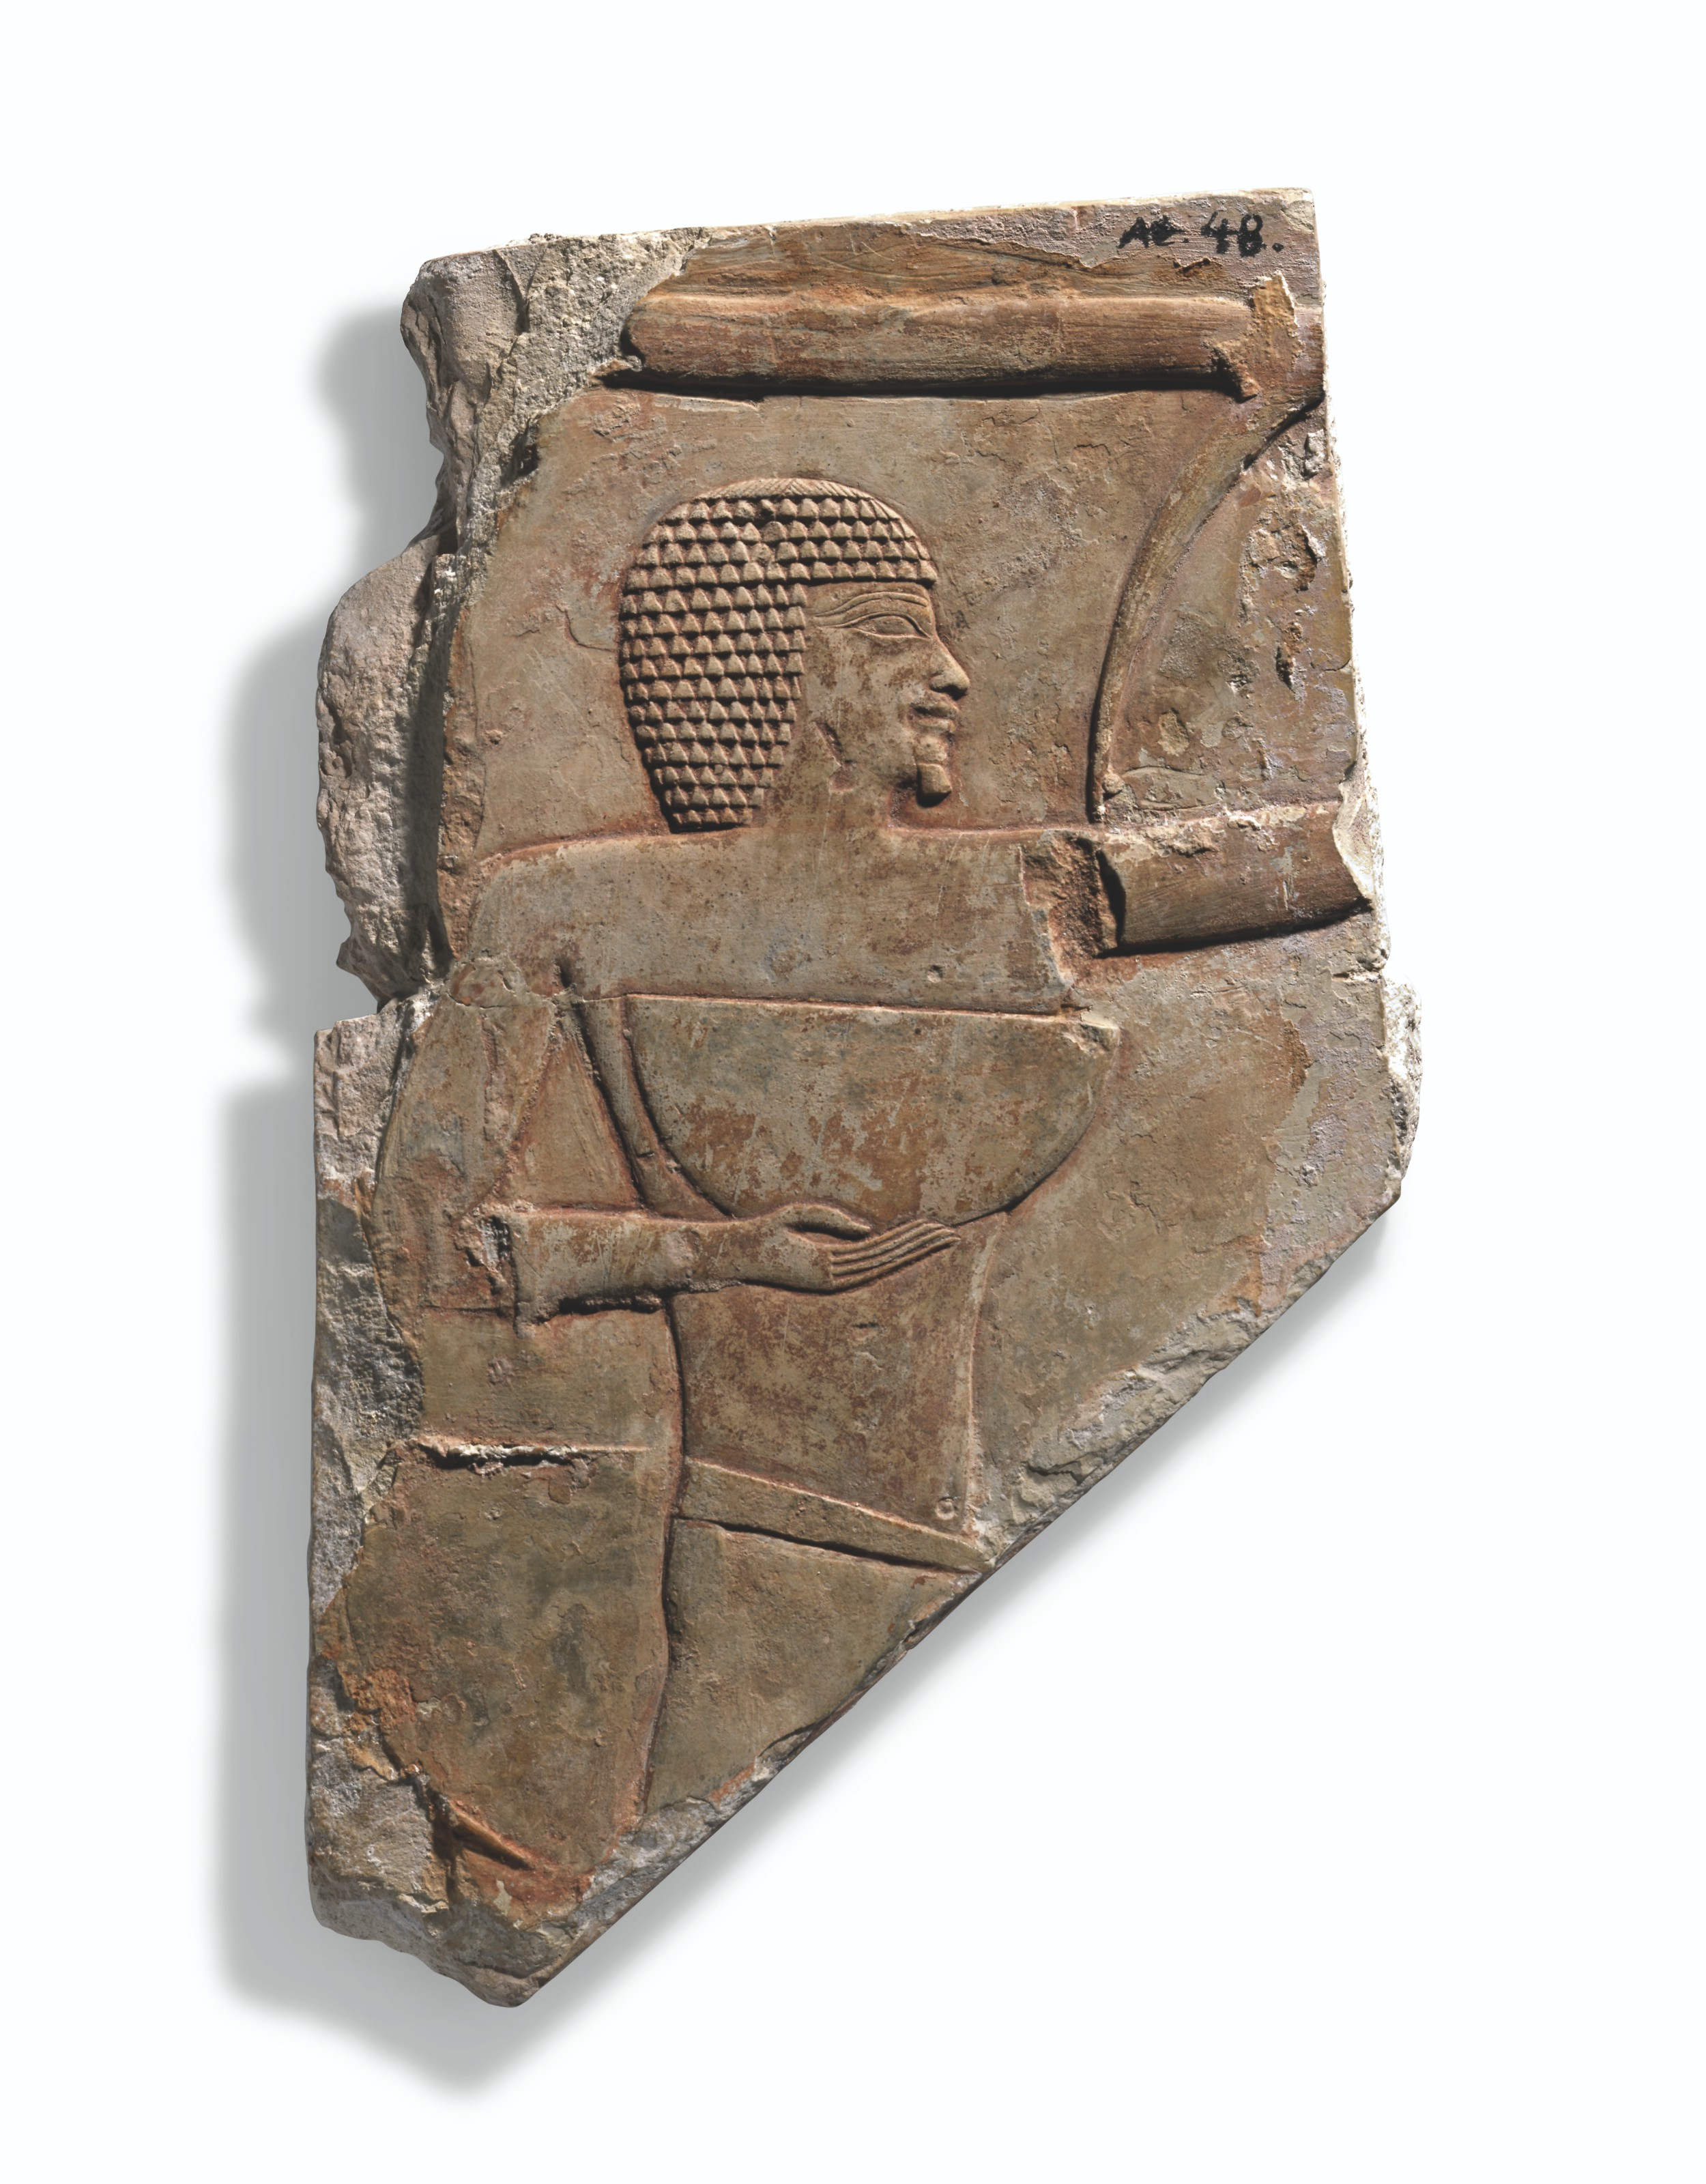 AN EGYPTIAN LIMESTONE RELIEF FRAGMENT WITH MAN HOLDING A BOWL